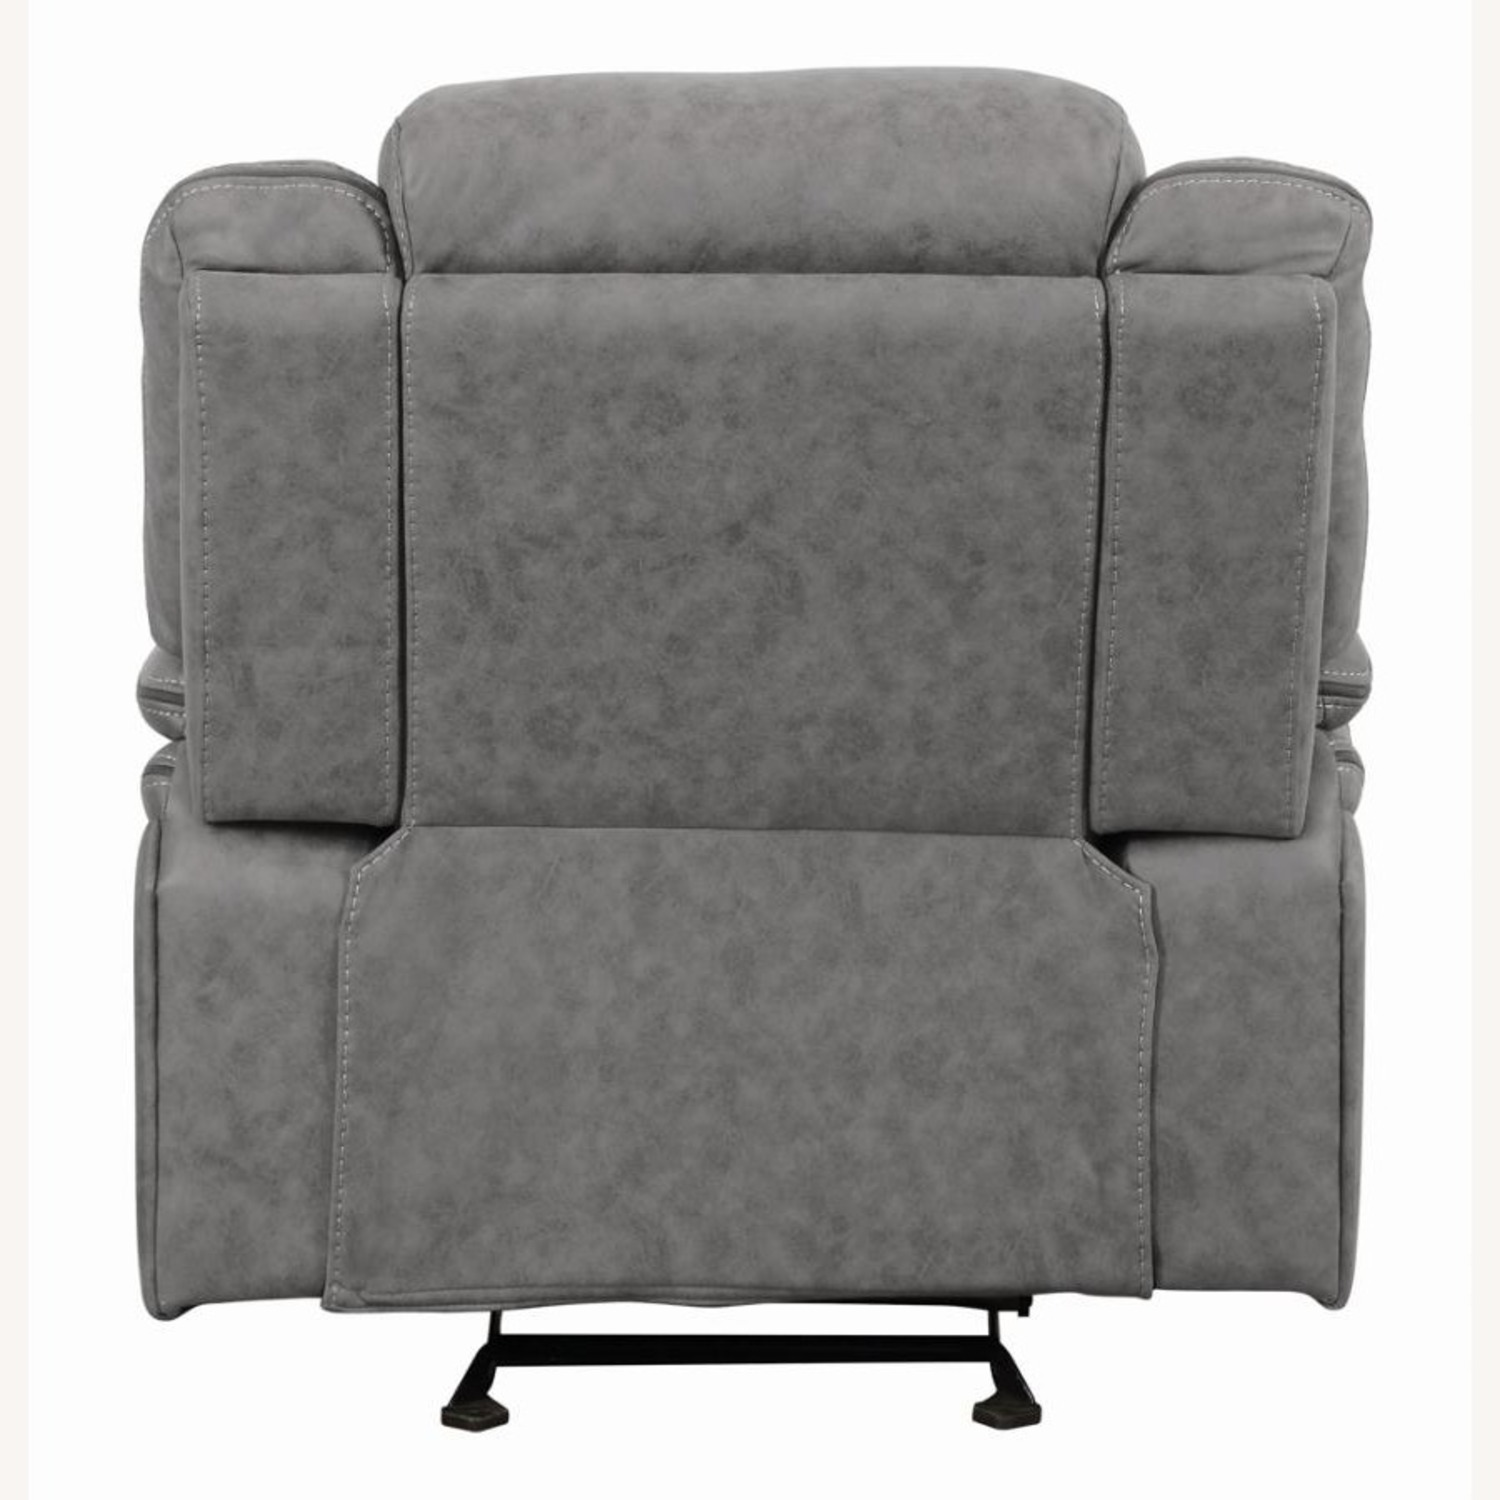 Glider Recliner Chair In Grey Suede Fabric - image-2